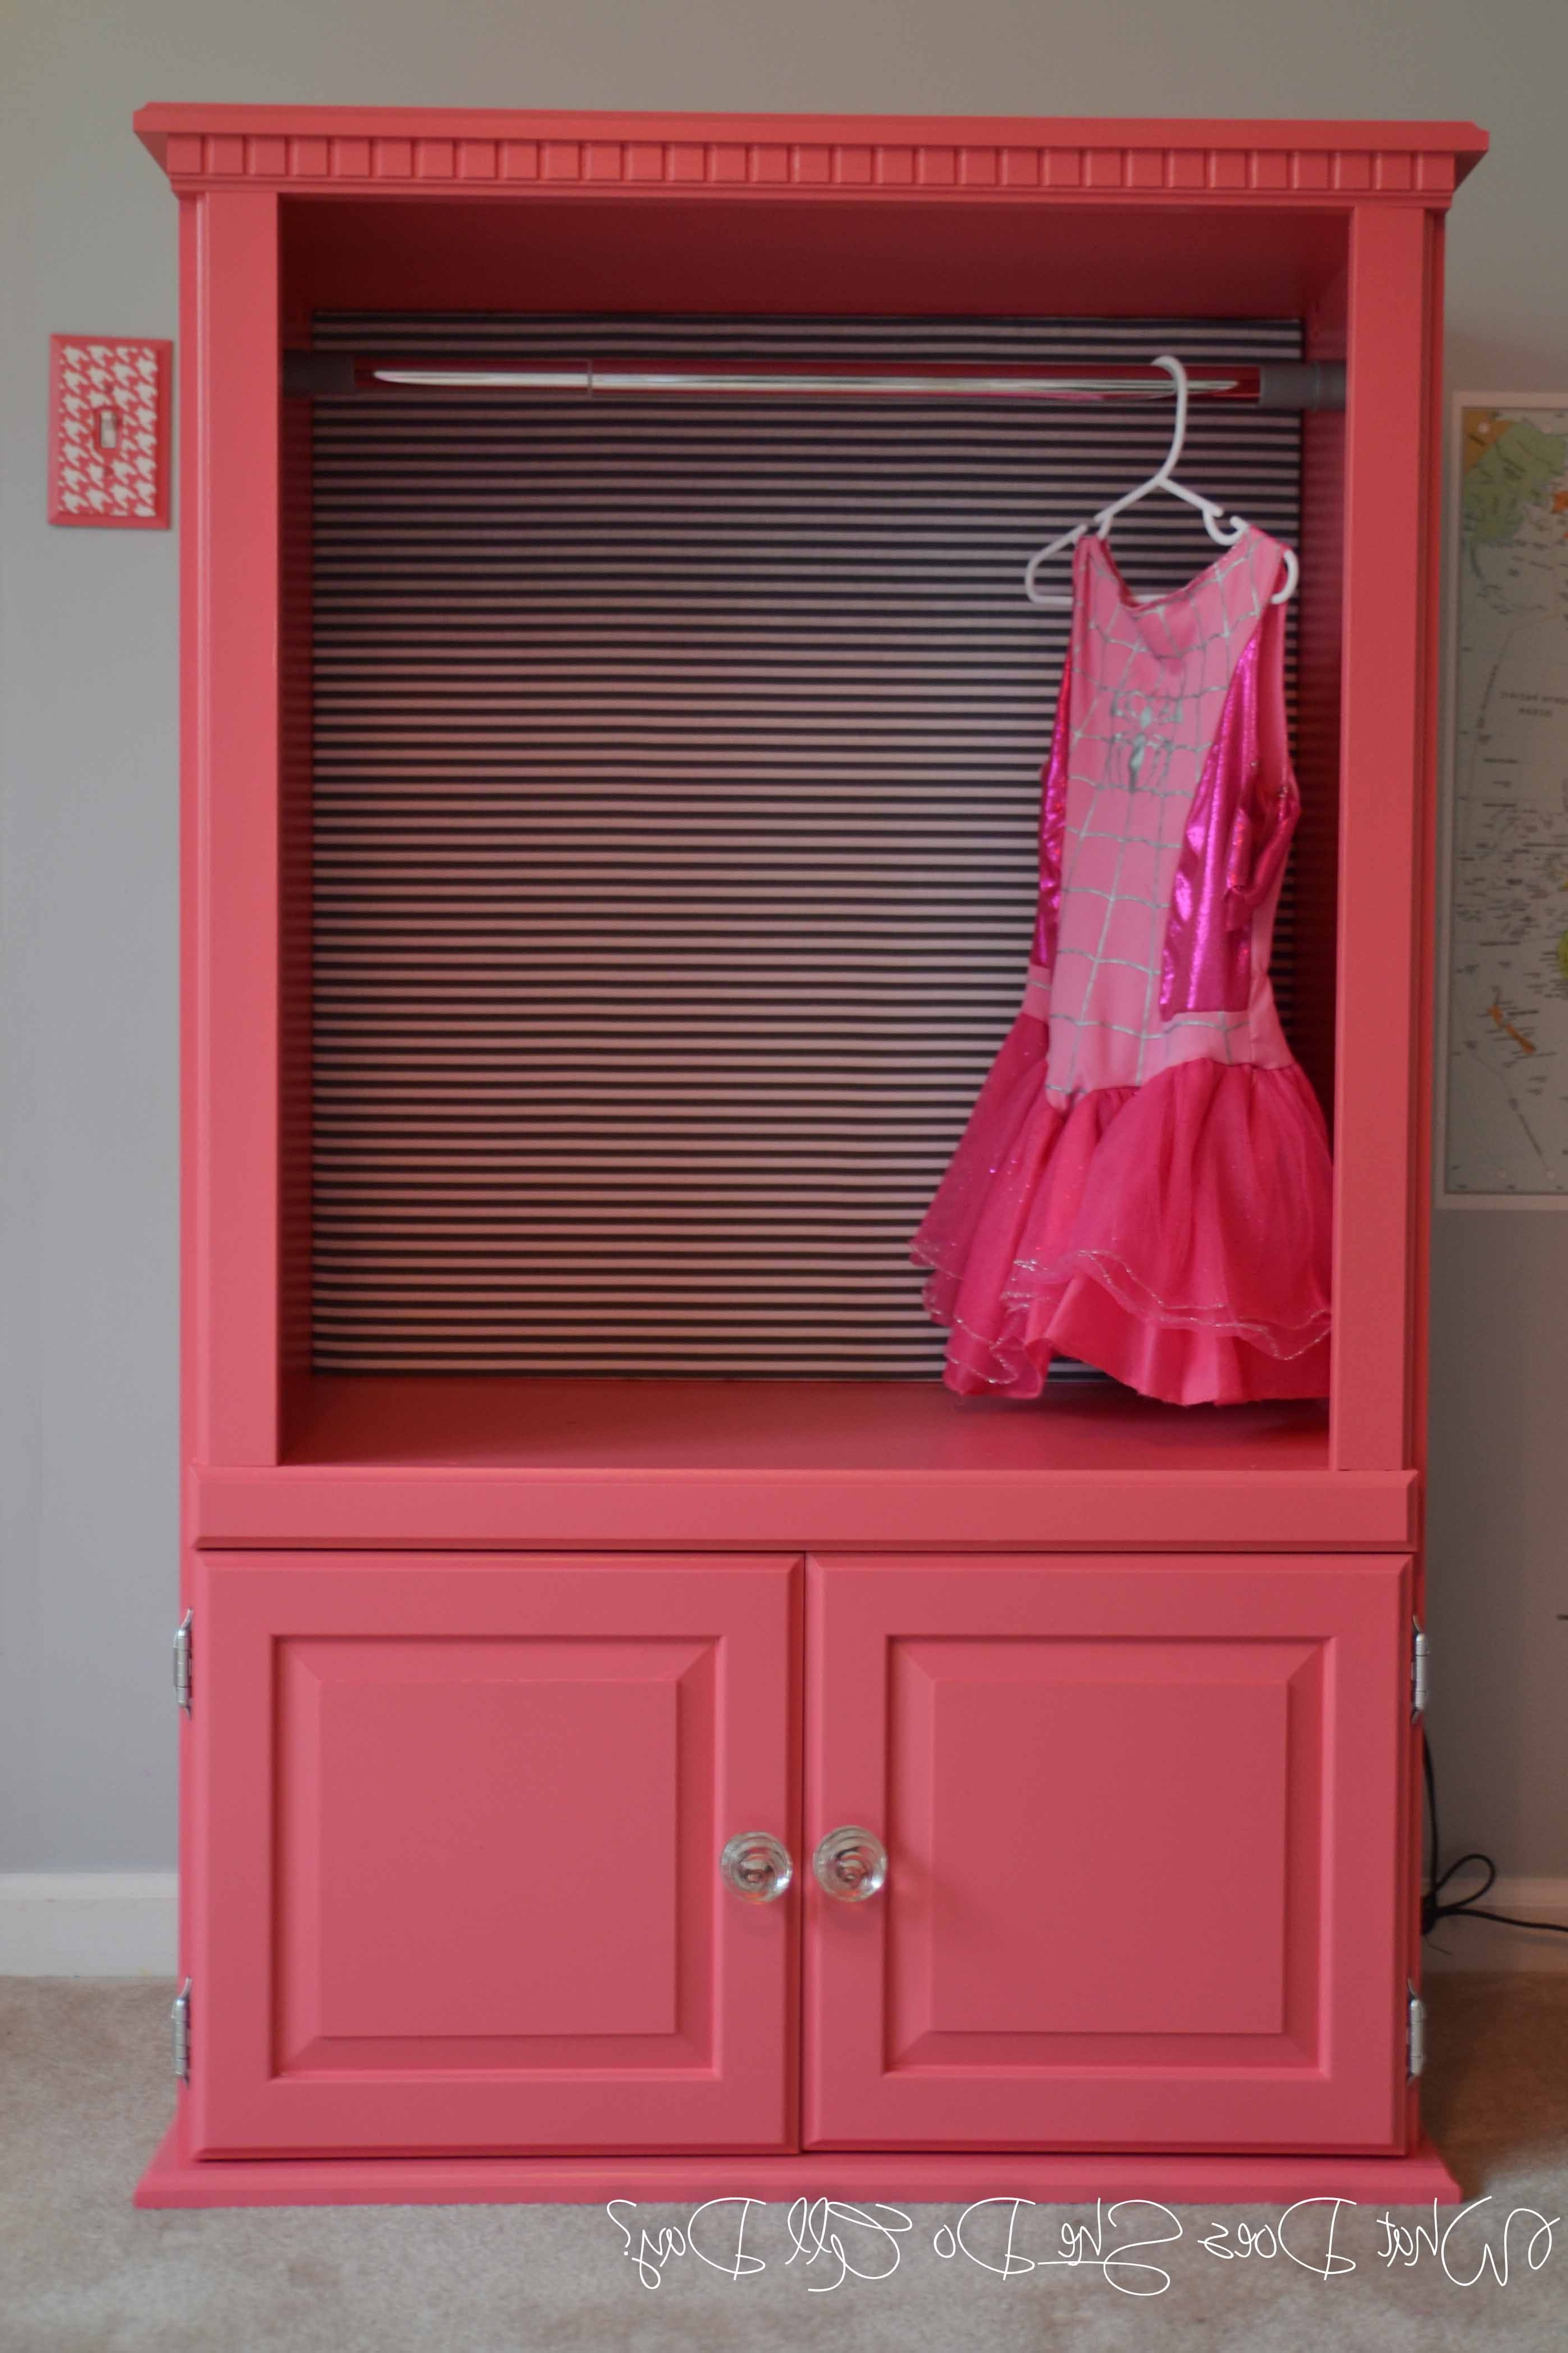 2017 Kids Dress Up Wardrobes Closet Within Dress Up Clothes Storage Diy – Storage Designs (View 2 of 15)